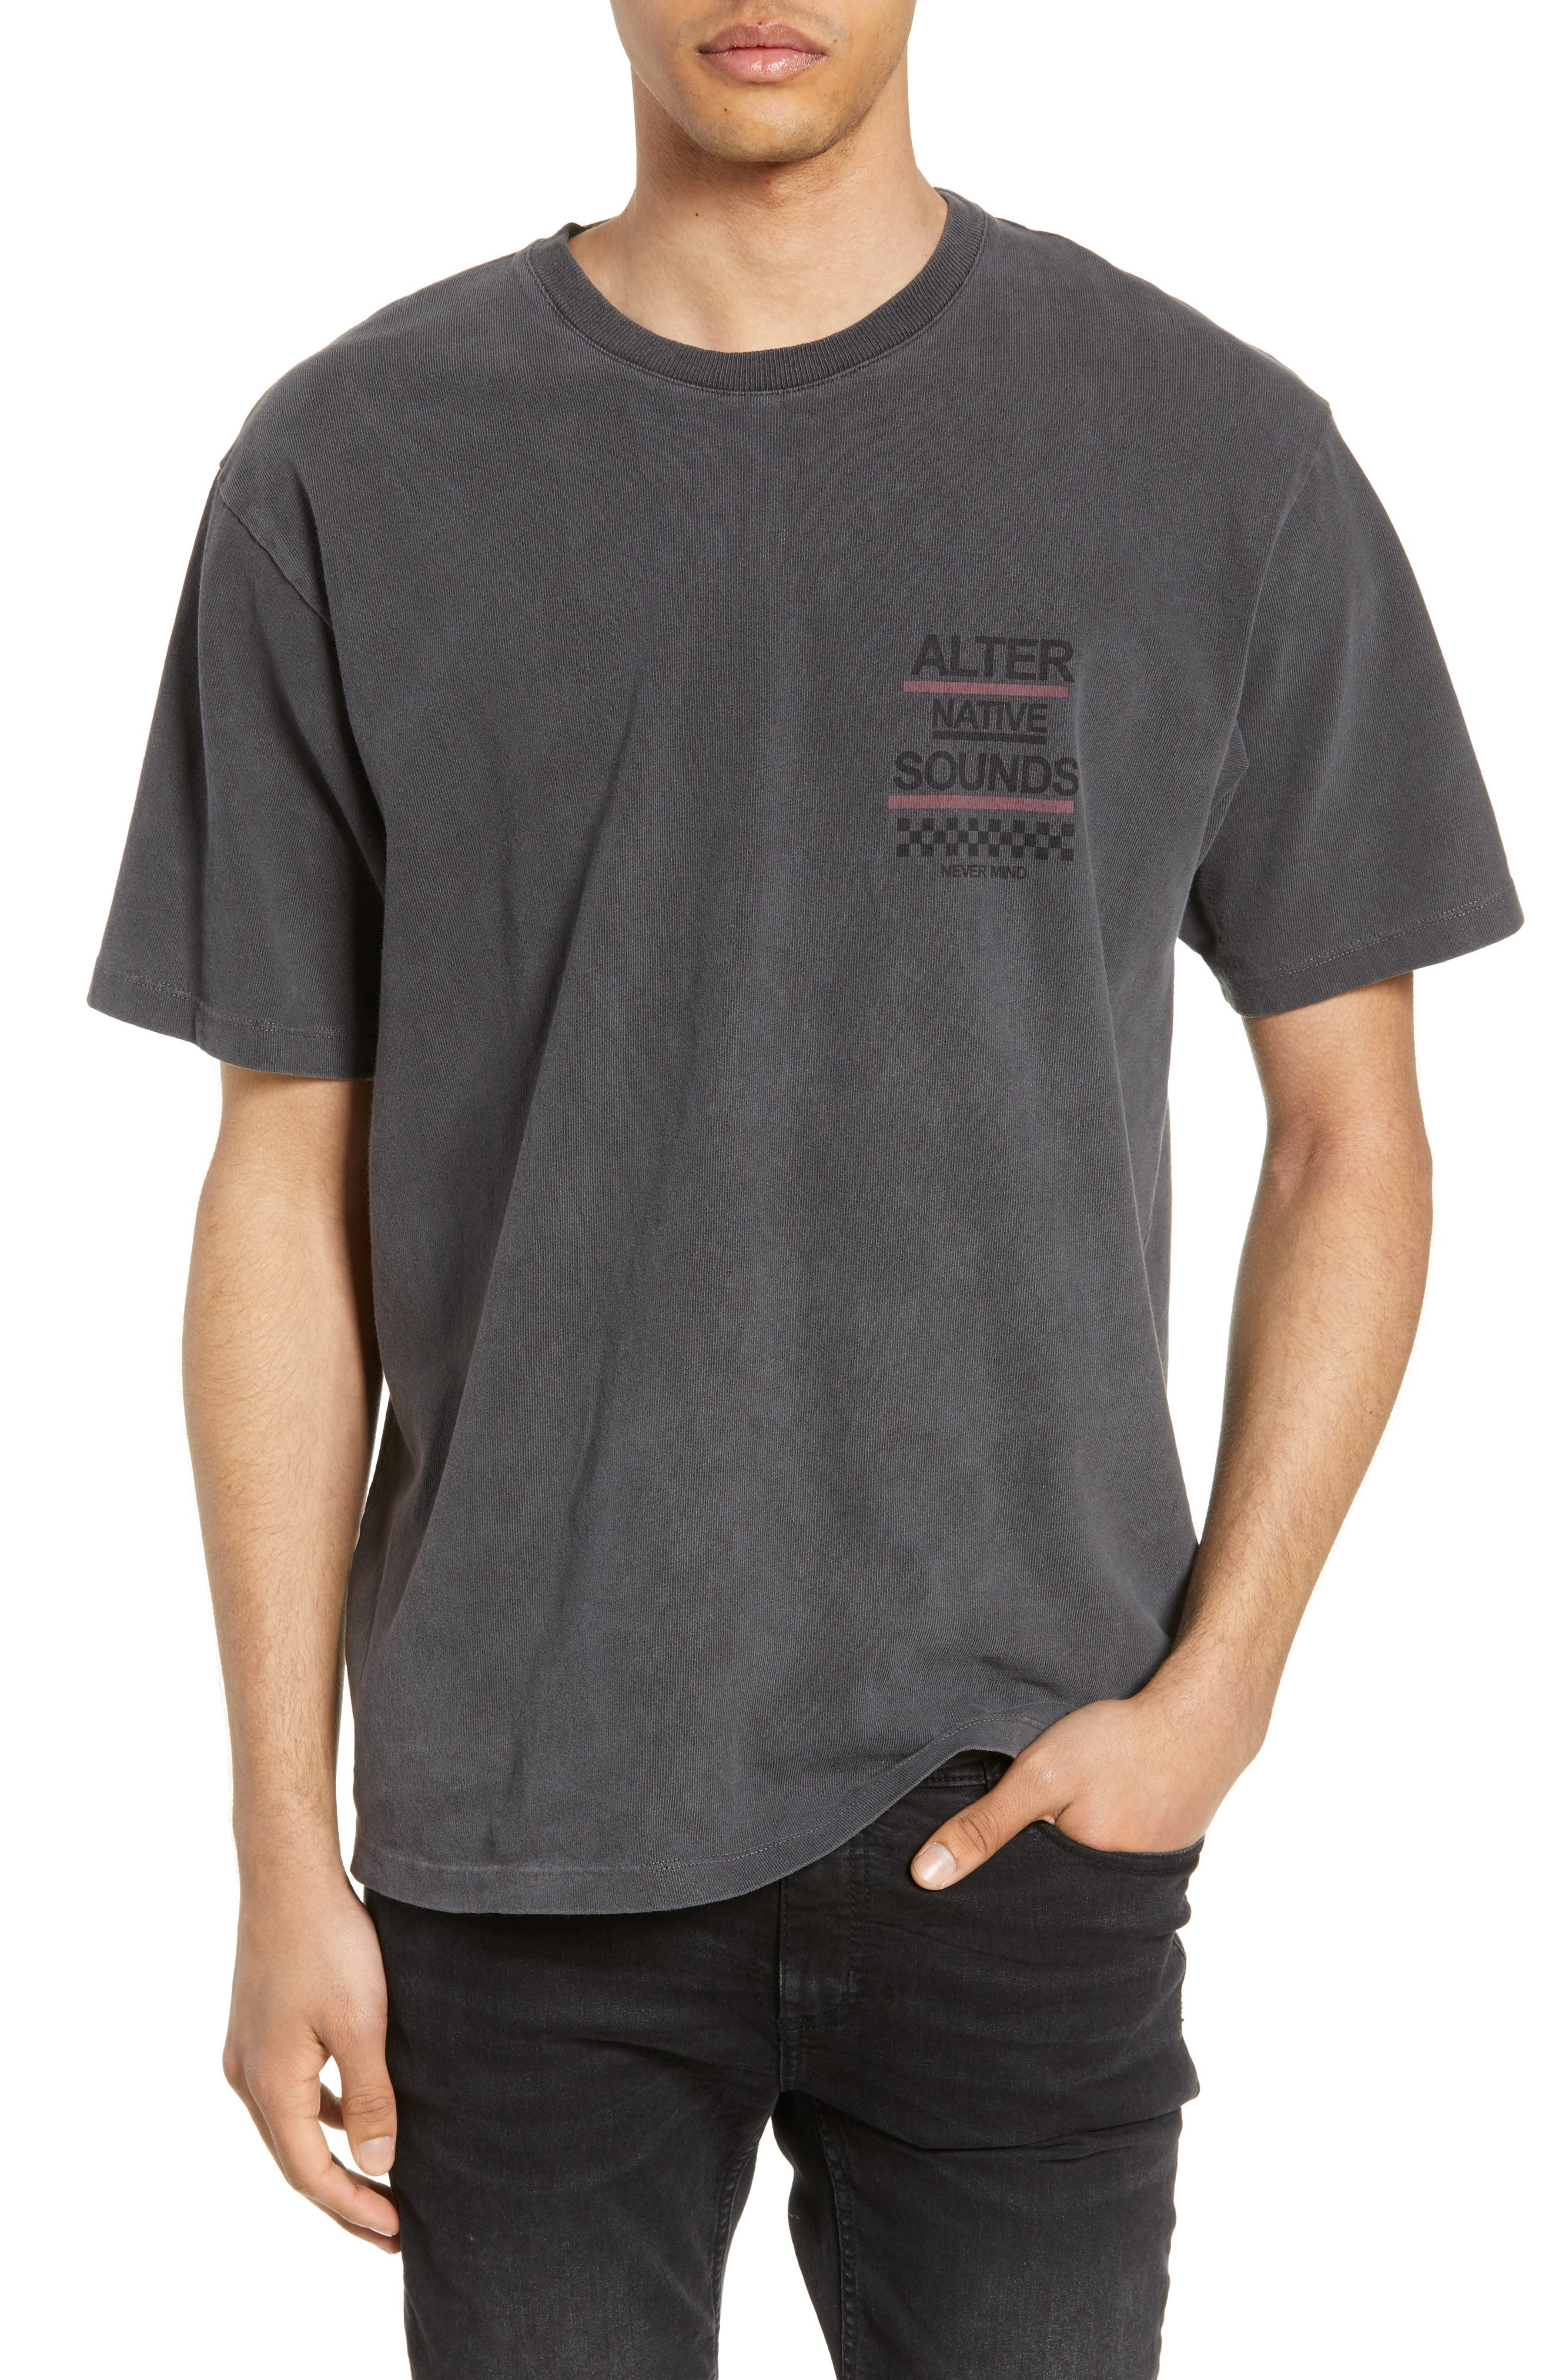 THE KOOPLES Graphic T-Shirt, Main, color, WASHED GREY